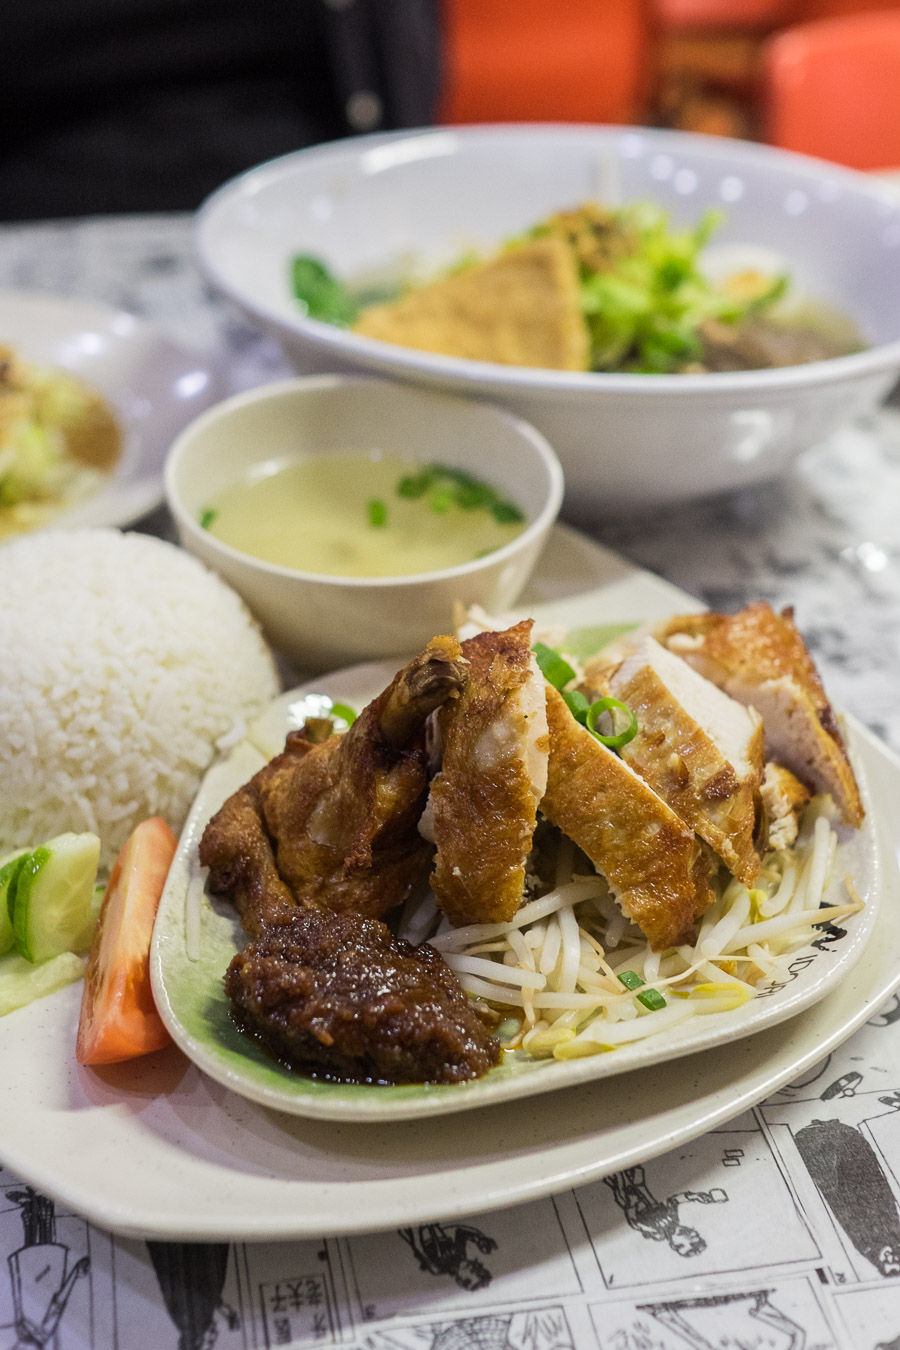 Fried chicken with rice (AU$12.50)